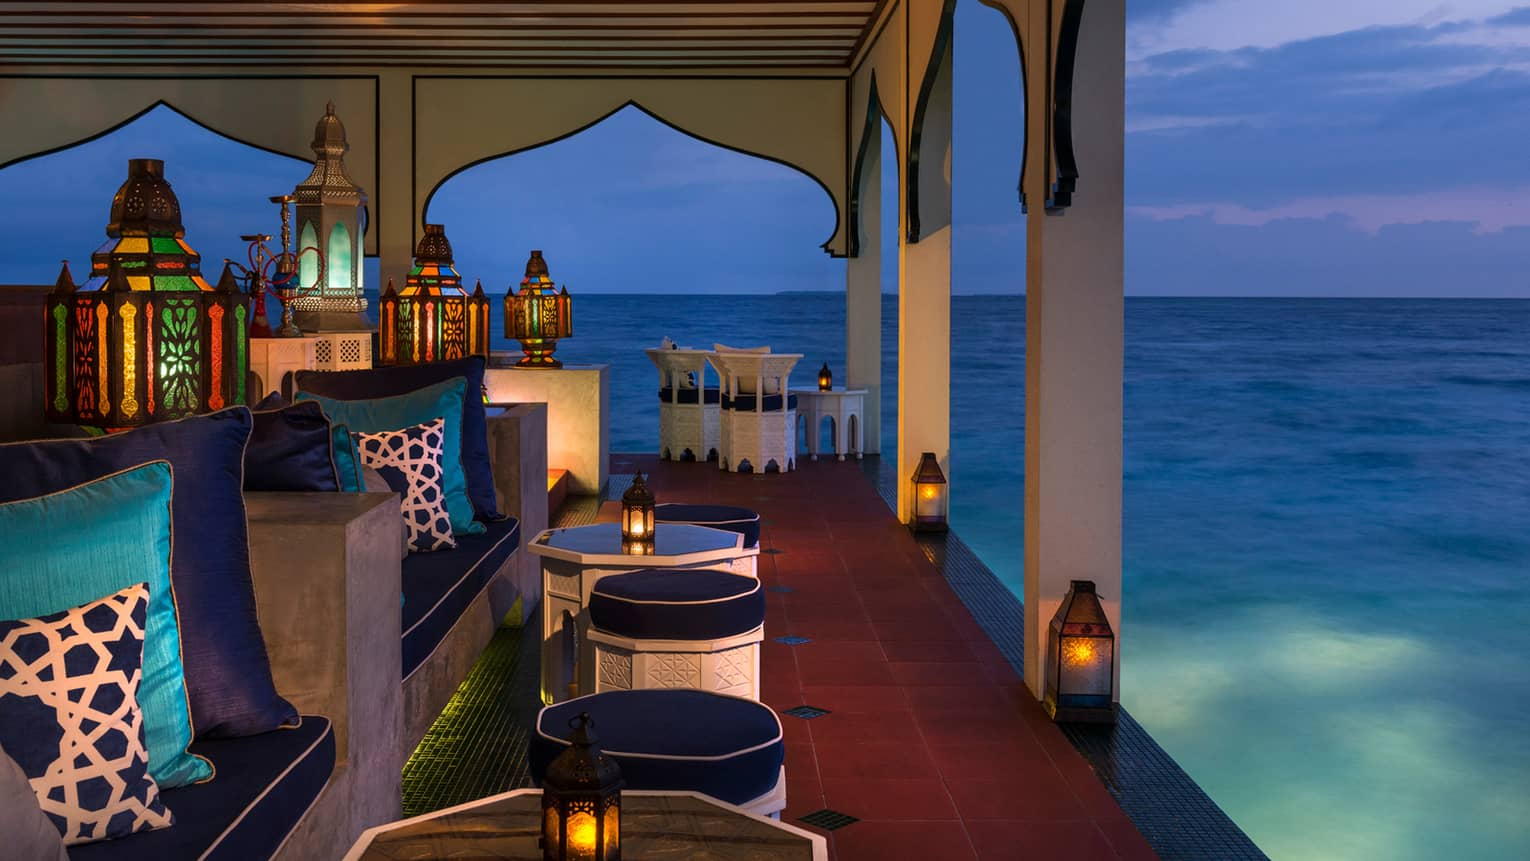 Shisha Bar patio with glowing Moroccan lanterns over plush blue benches, silk pillows, over lagoon